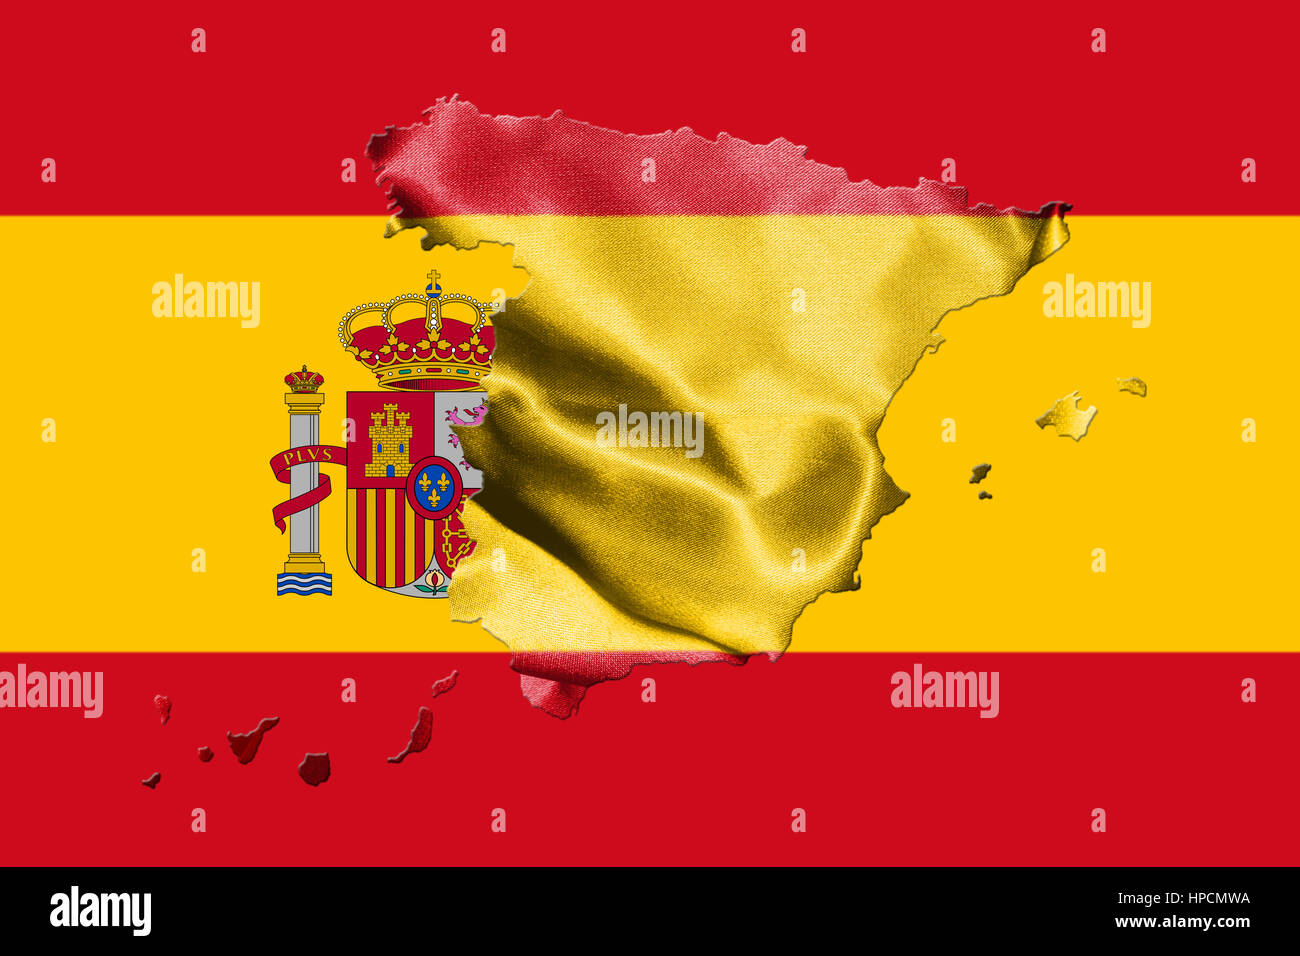 Spain Map Flag.Spanish National Flag With Coat Of Arms And Map Of Spain 3d Stock